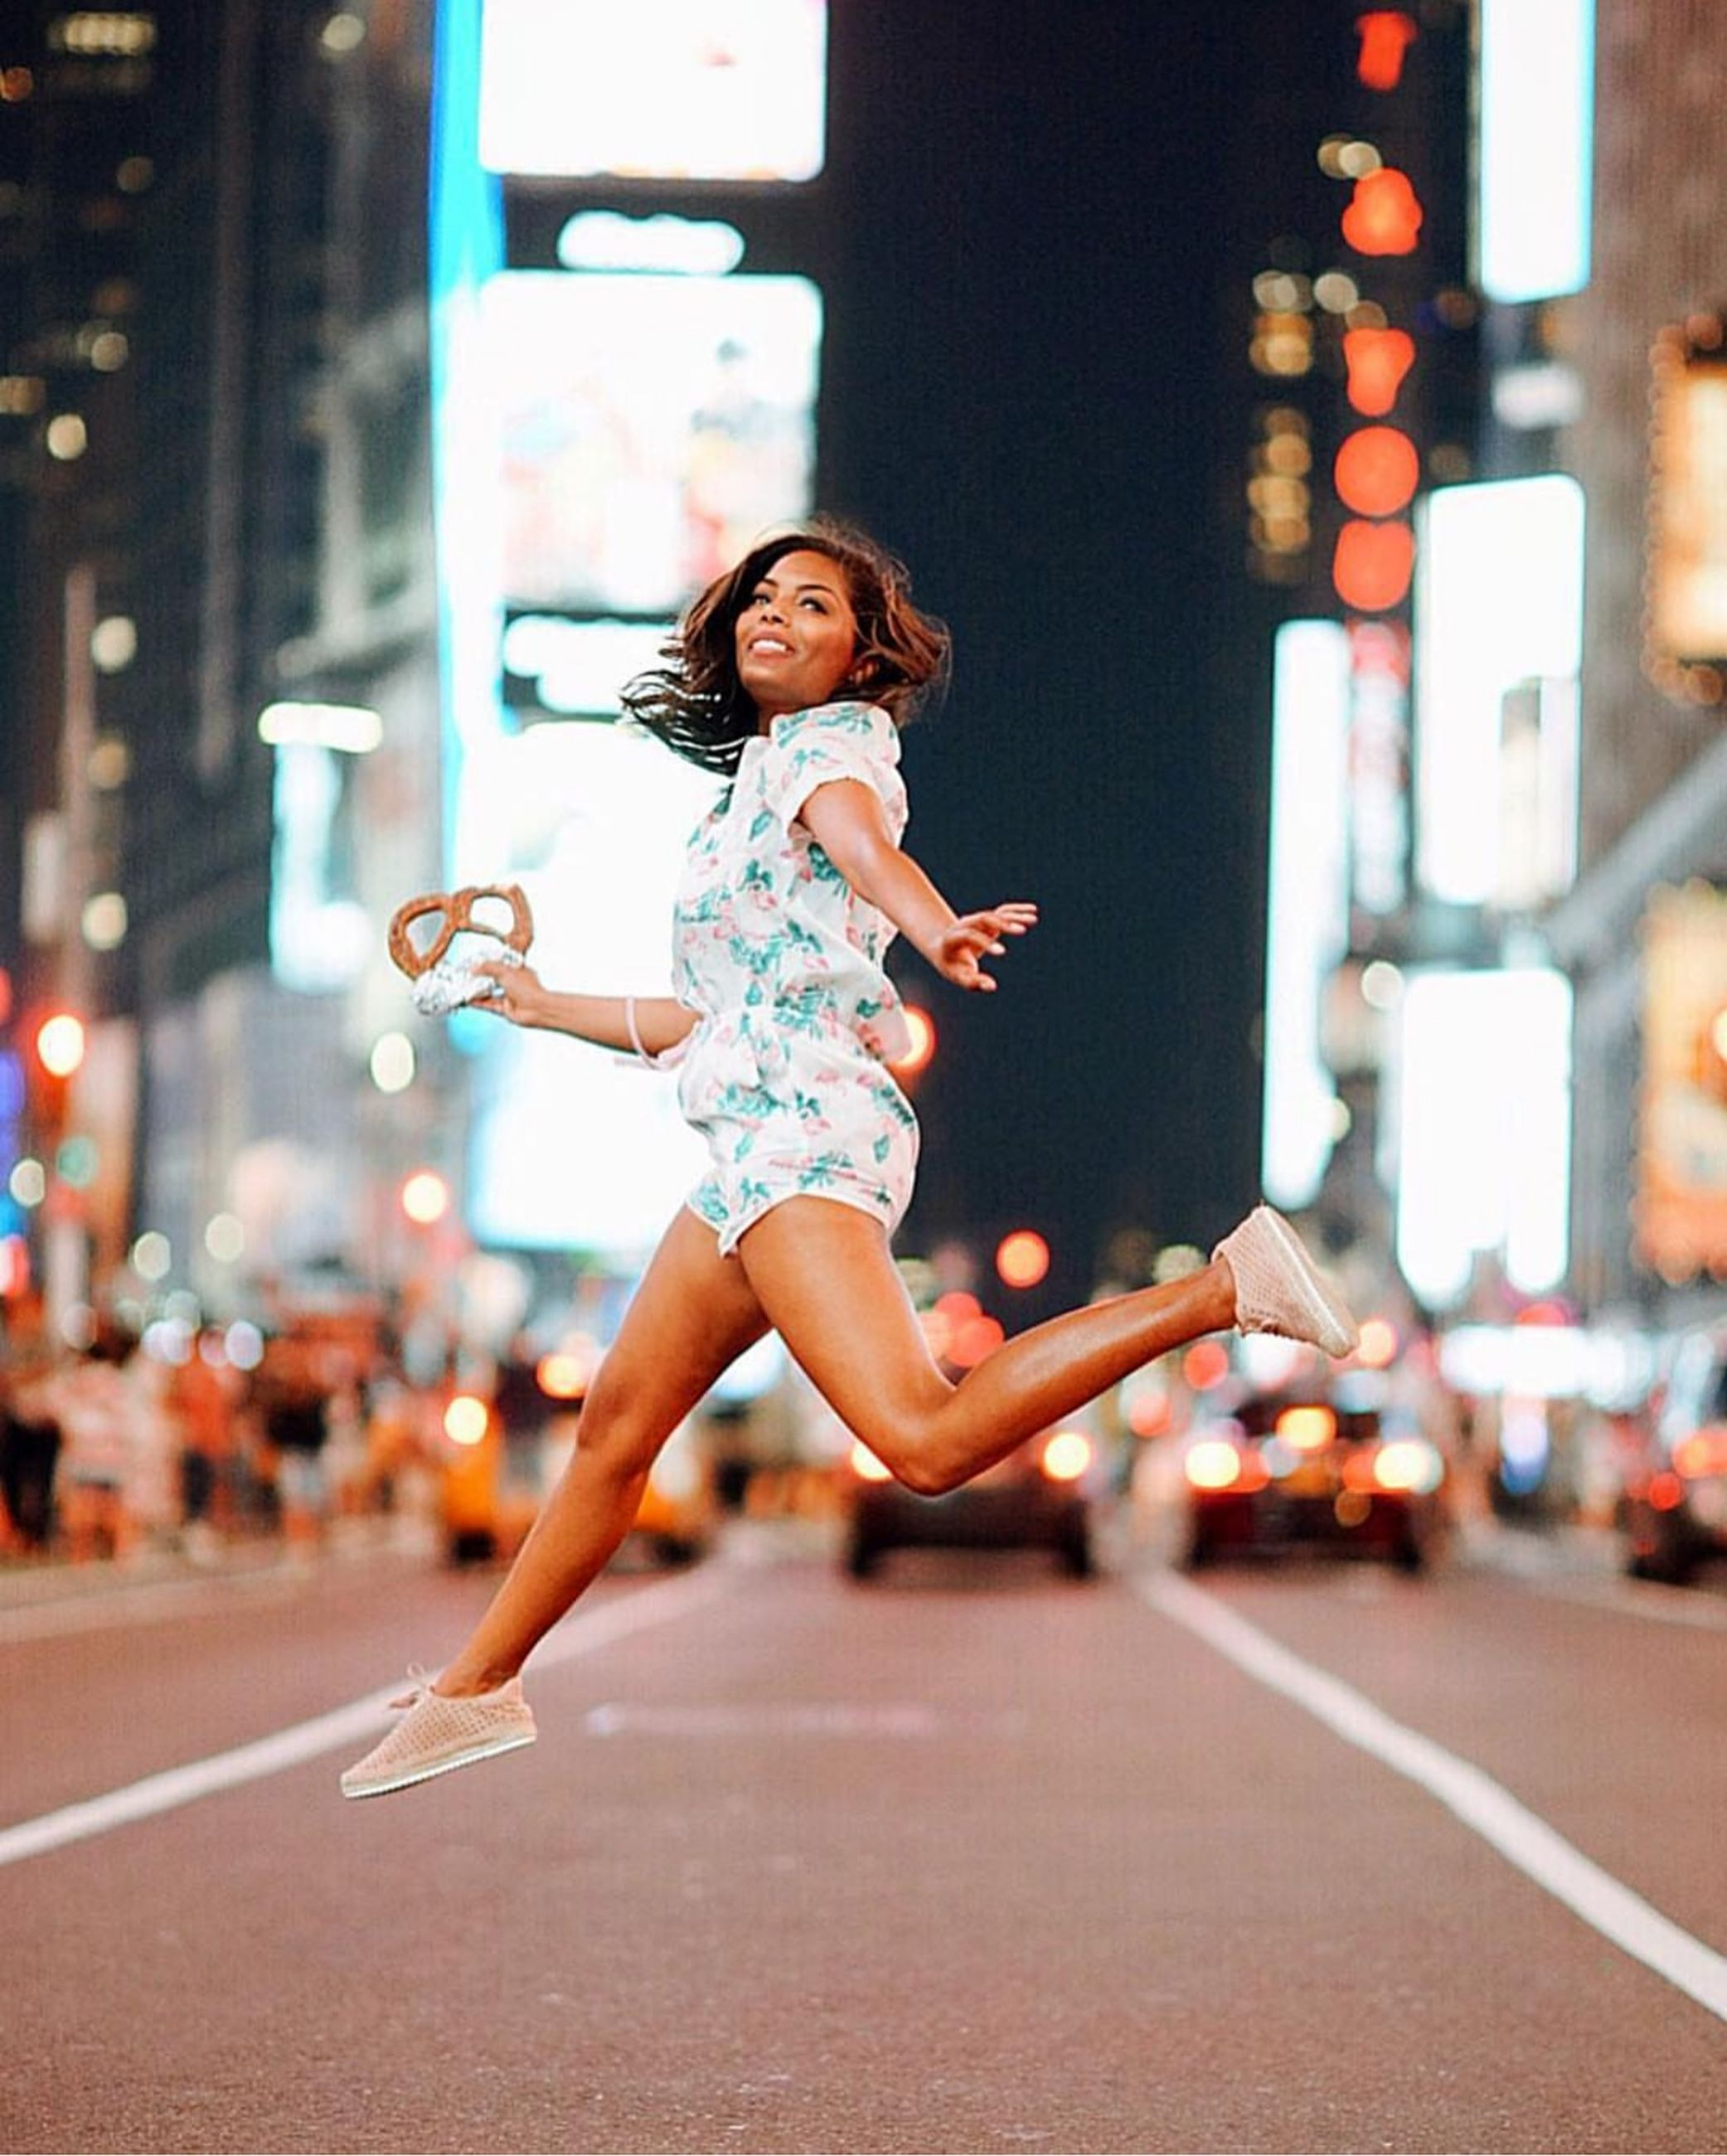 full length, city, one person, real people, lifestyles, night, street, architecture, running, mid-air, motion, leisure activity, road, women, built structure, sport, focus on foreground, building exterior, jumping, outdoors, beautiful woman